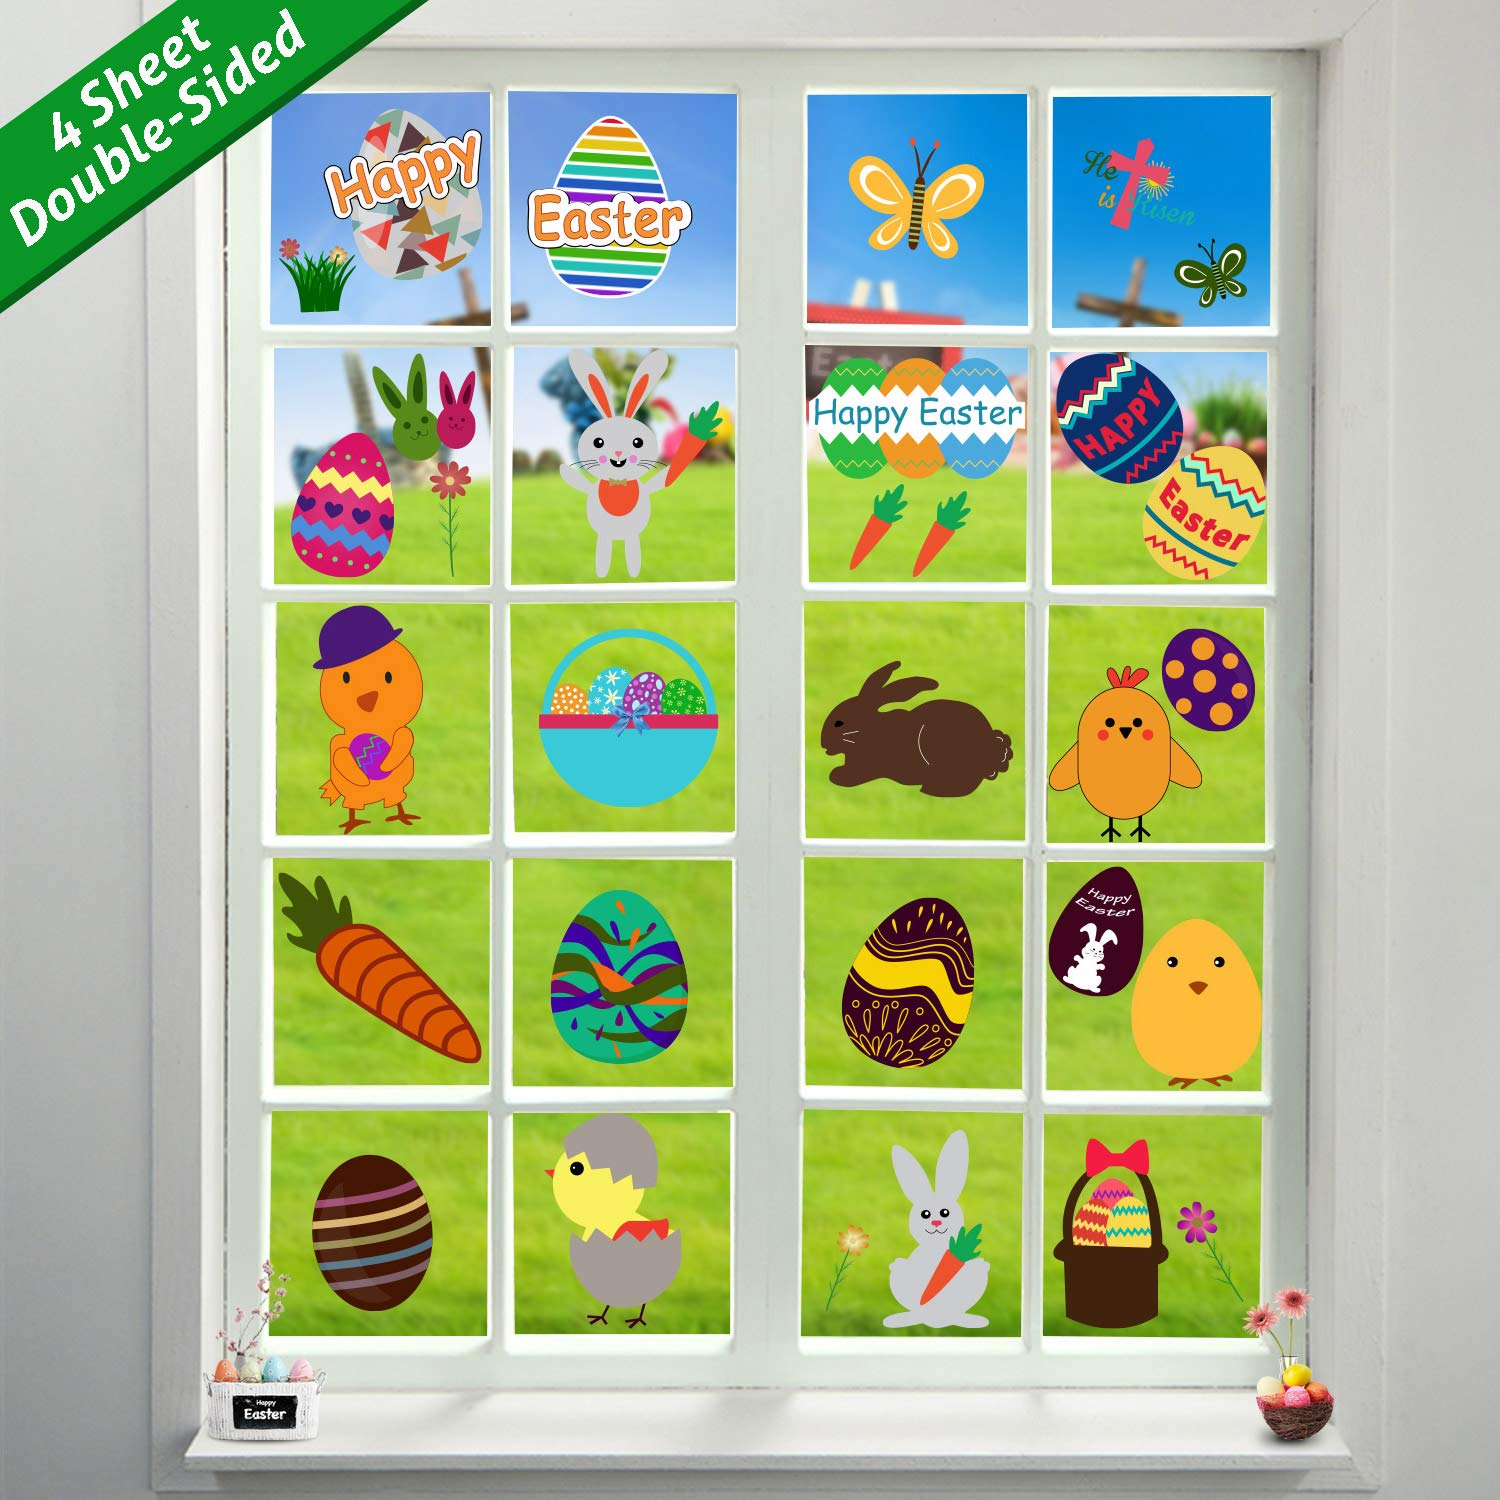 Tifeson 66 PCS Easter Window Clings Static Stickers Decal - Removable PVC Easter Bunny Easter Eggs Window Decals - Easter Spring Decorations Party Supplies